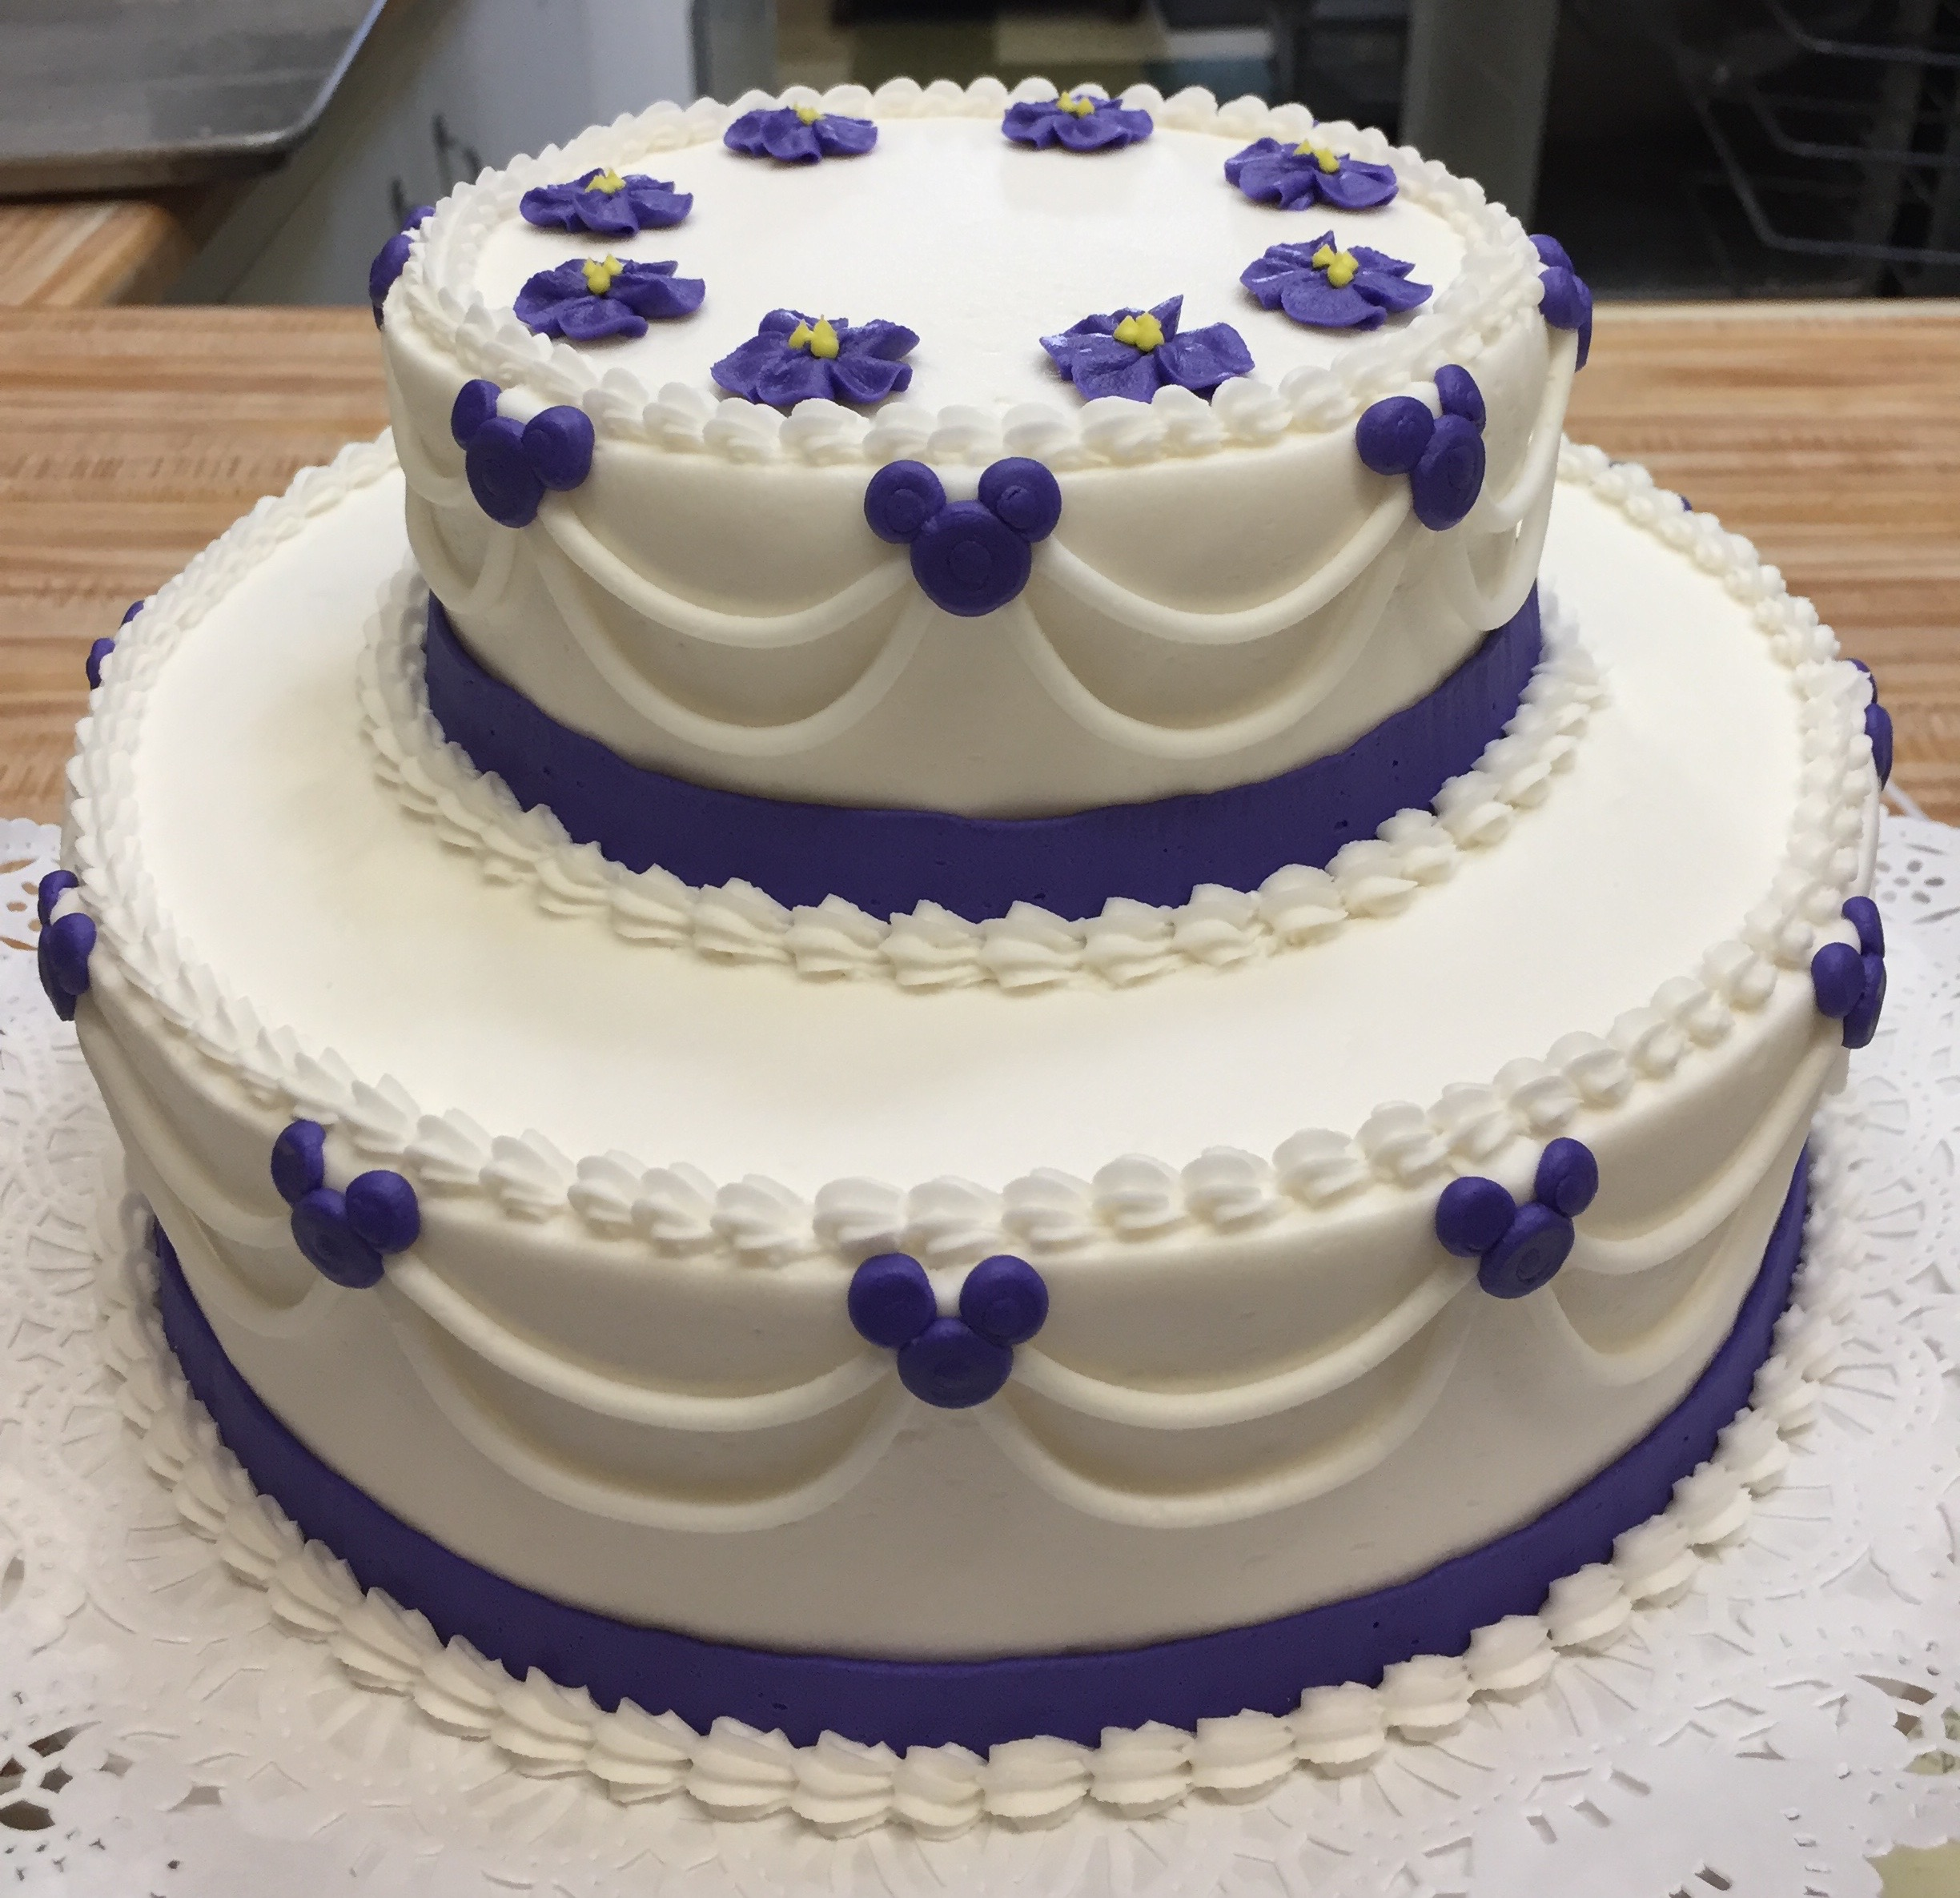 2 Tier purple Mouse theme cake 20